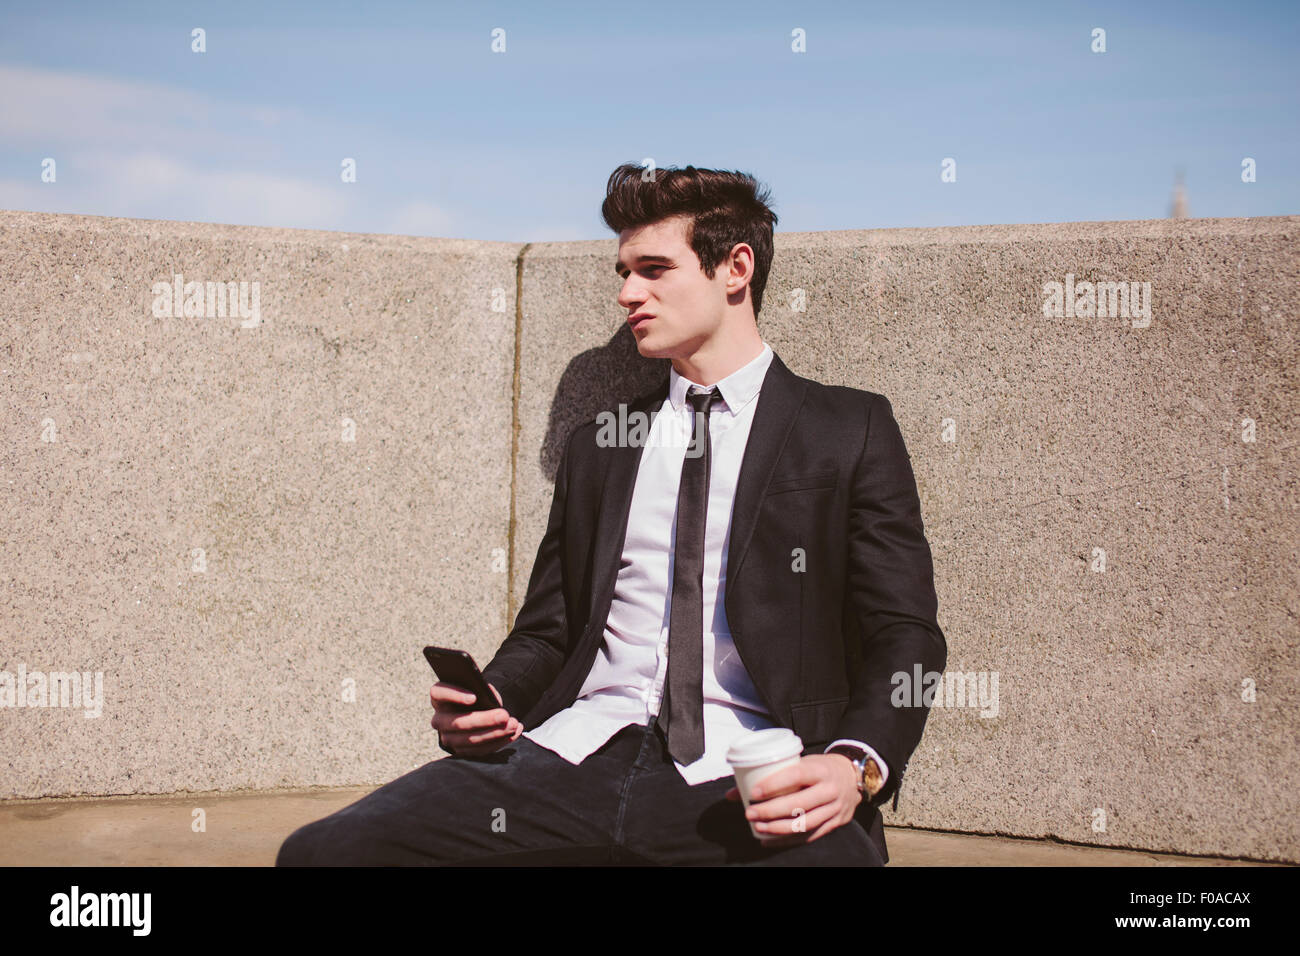 Disappointed young businessman on city seat with smartphone - Stock Image